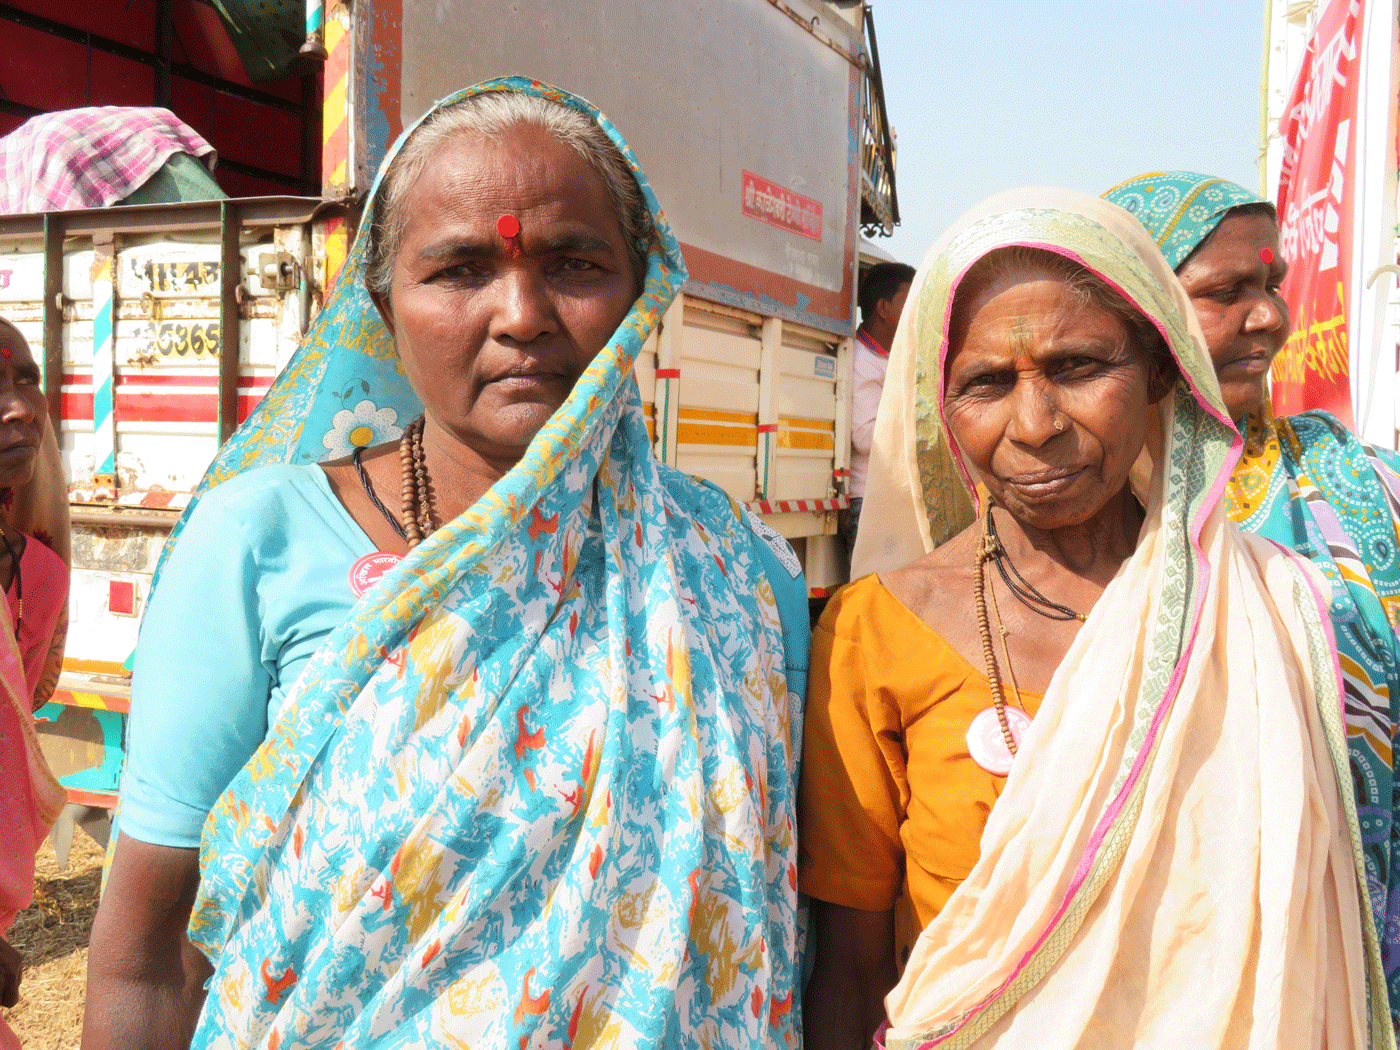 Two women farmer